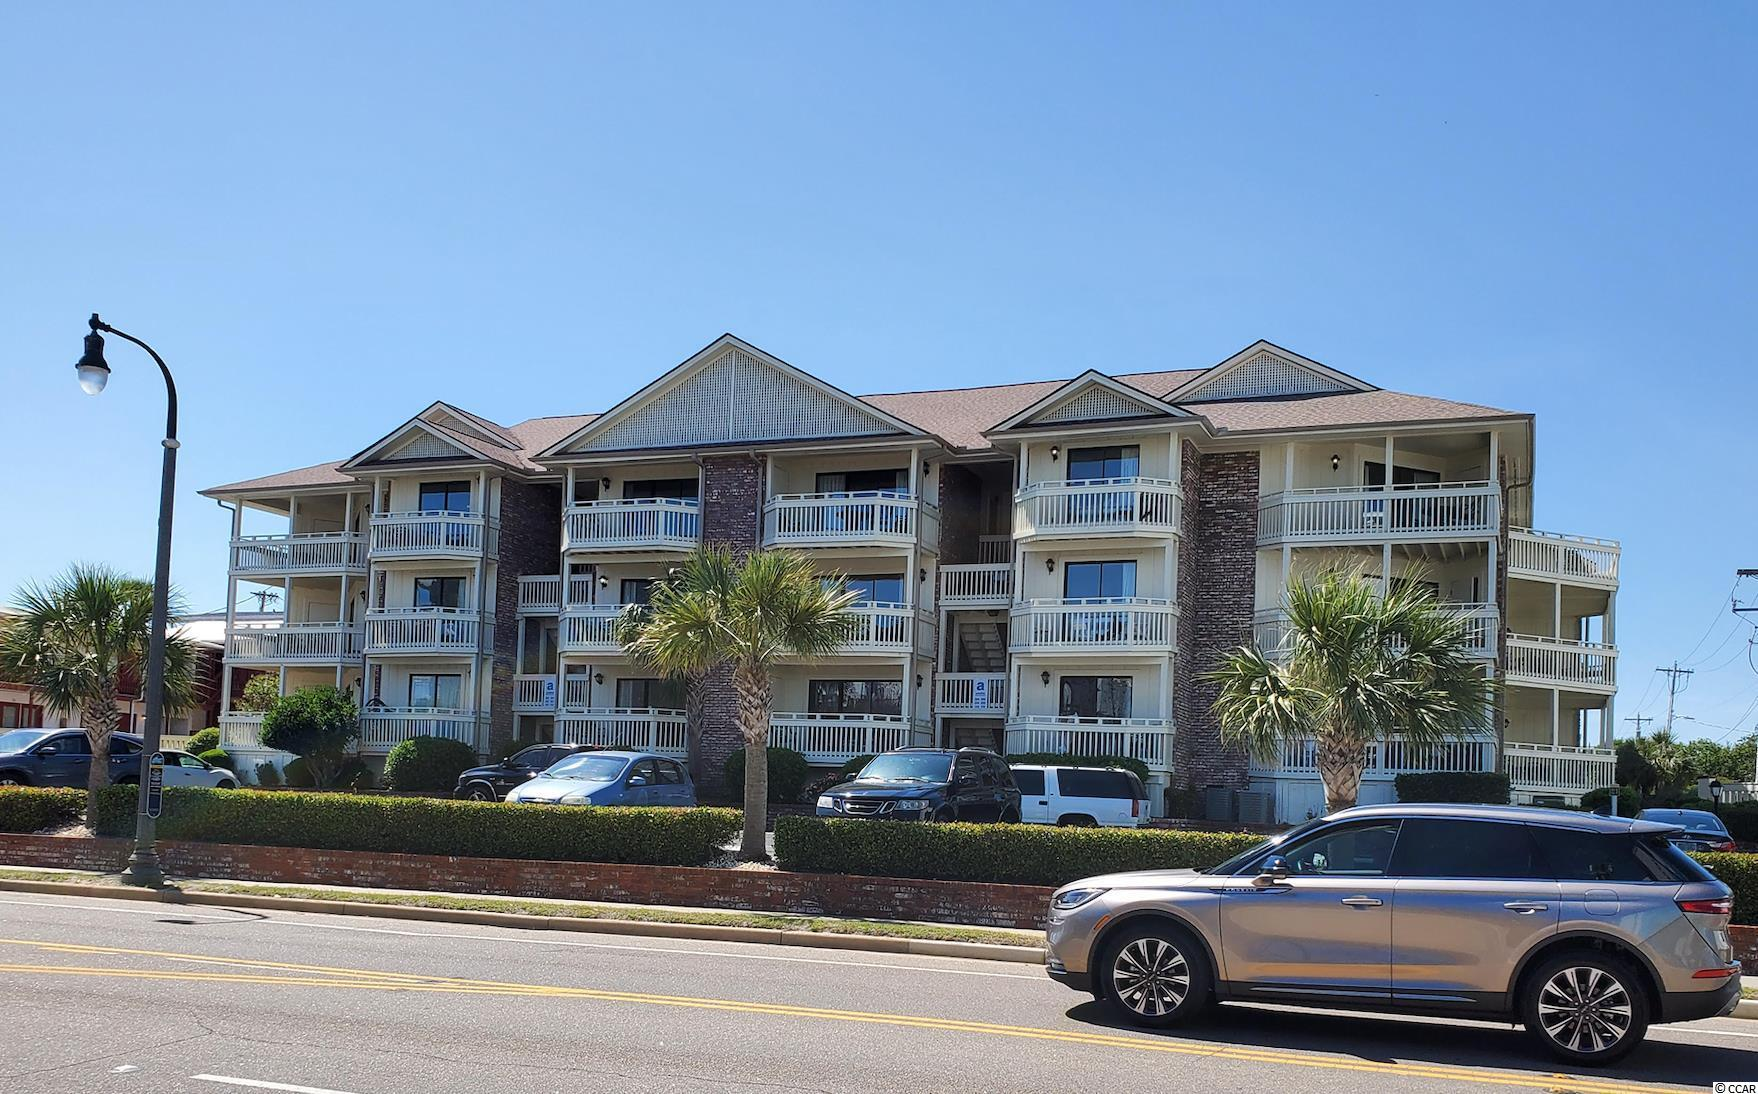 Beautiful, fully renovated ocean view condo in the north end of Myrtle Beach!  White cabinets, stainless appliances, granite countertops, tile backsplash kitchen. Furniture style vanities in bathrooms.  New kitchen and bathroom cabinets, new countertops, and new flooring throughout were installed spring 2020. New HVAC installed December 2020. Perfect for your own beautiful primary residence, a 2nd home, or excellent rental income.